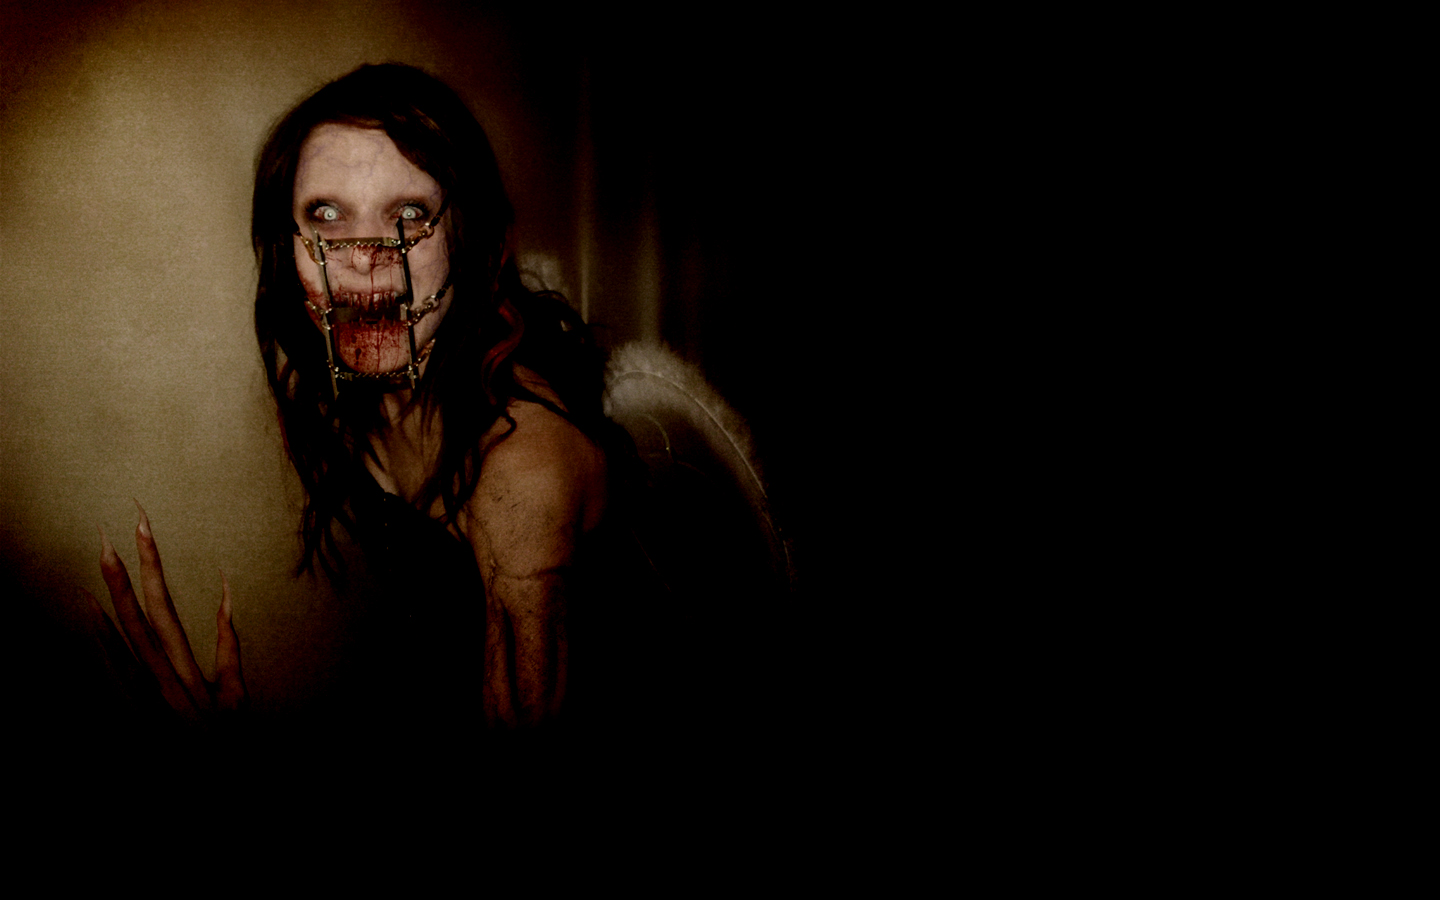 Free Download Browse Scary Wallpapers For Iphone Hd Photo